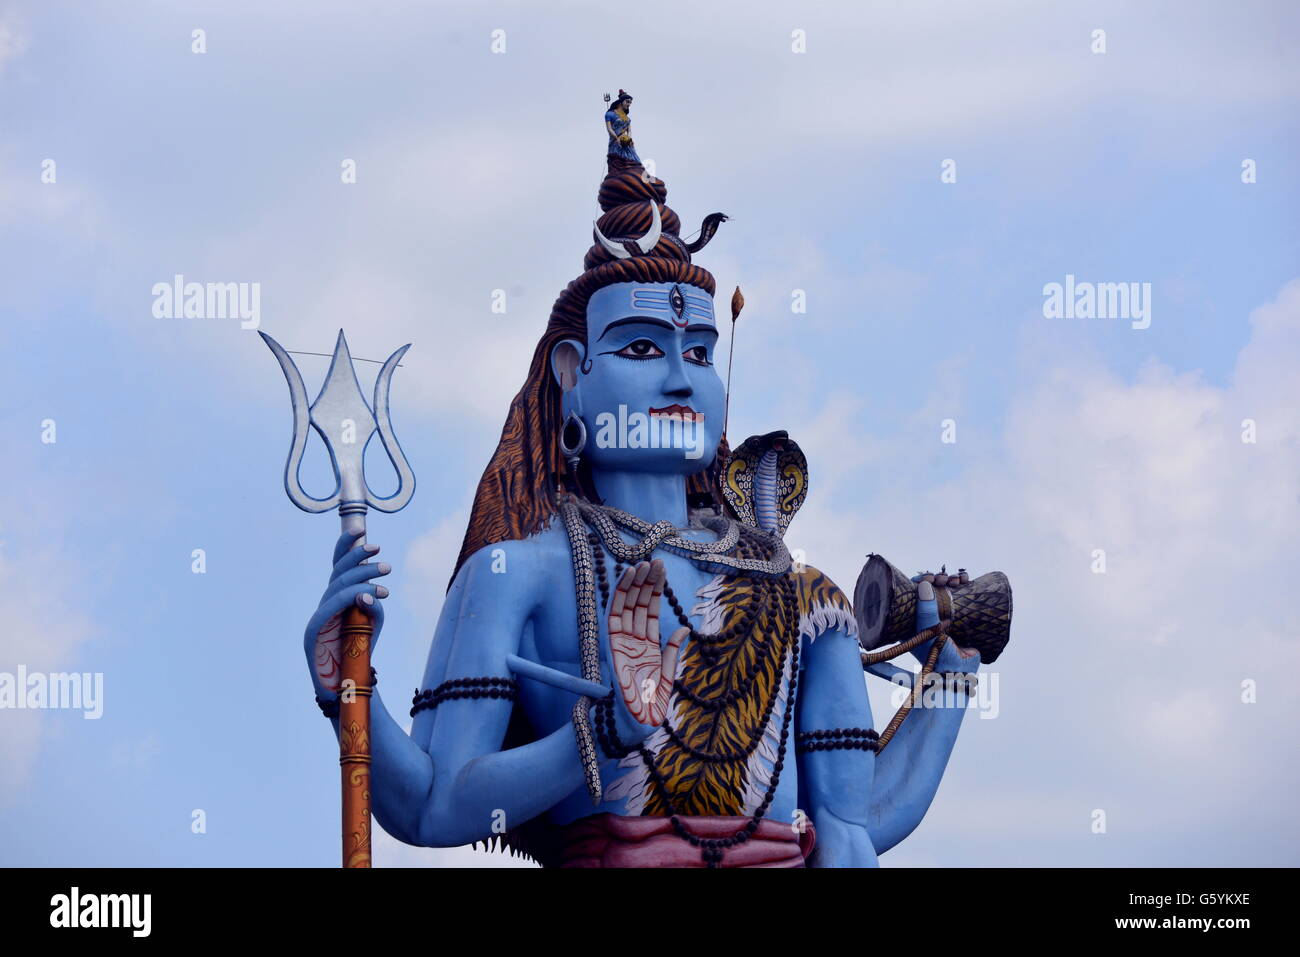 Lord Shiva Stock Photos & Lord Shiva Stock Images - Alamy